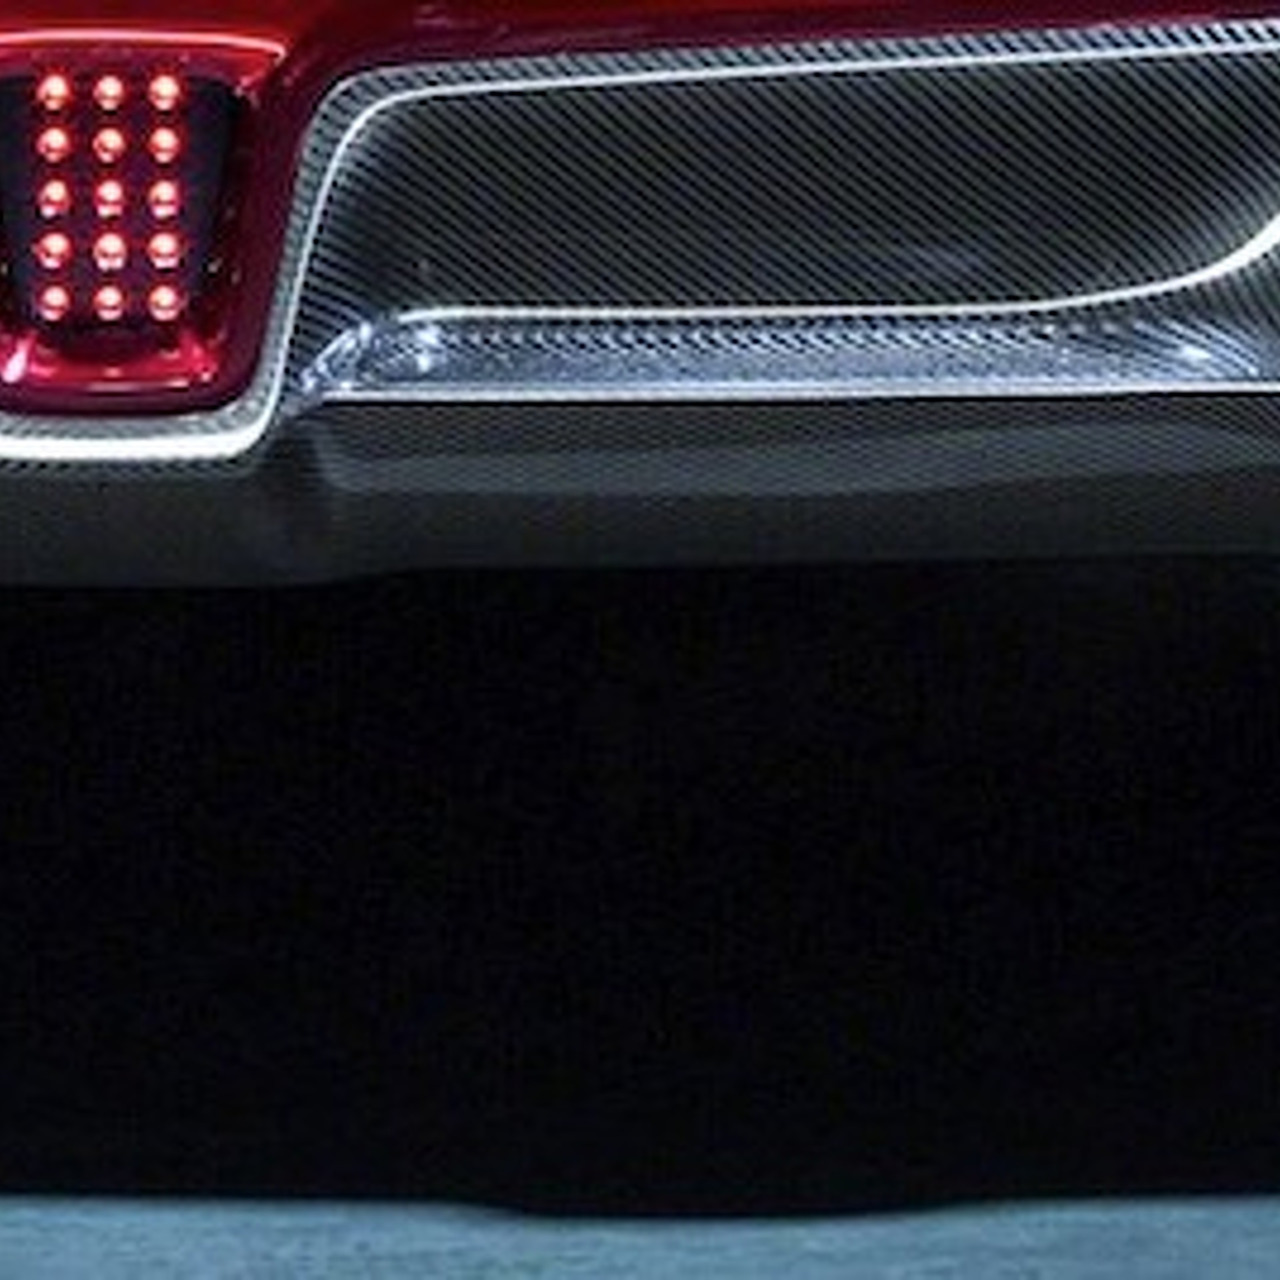 Is This the Toyota Mirai, or Something Else?